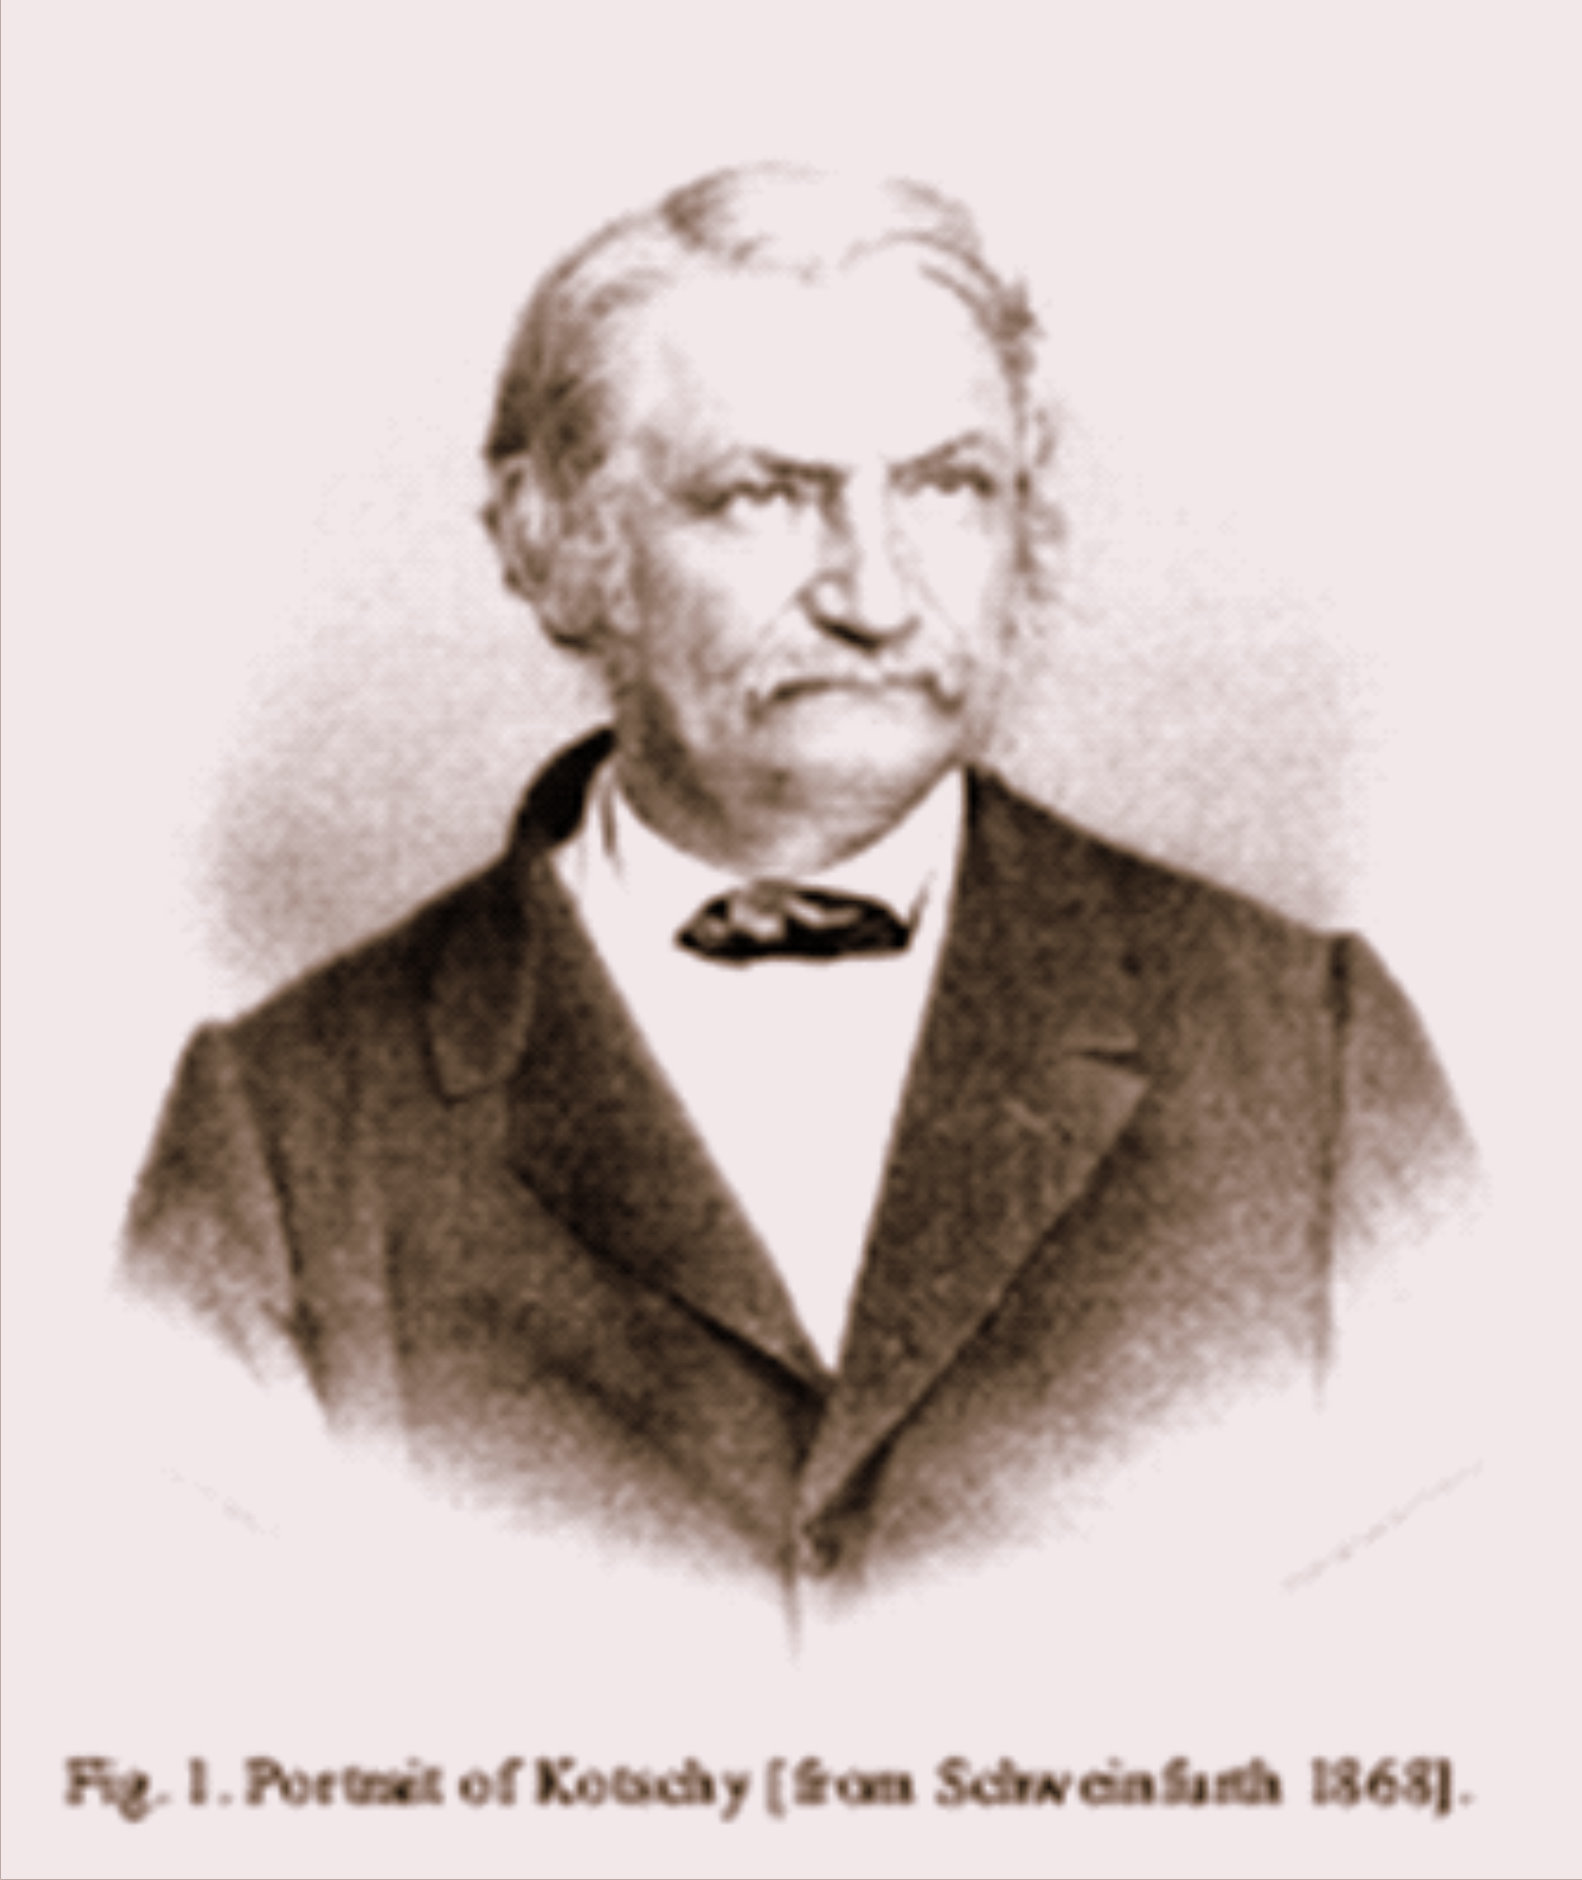 Depiction of Theodor Kotschy